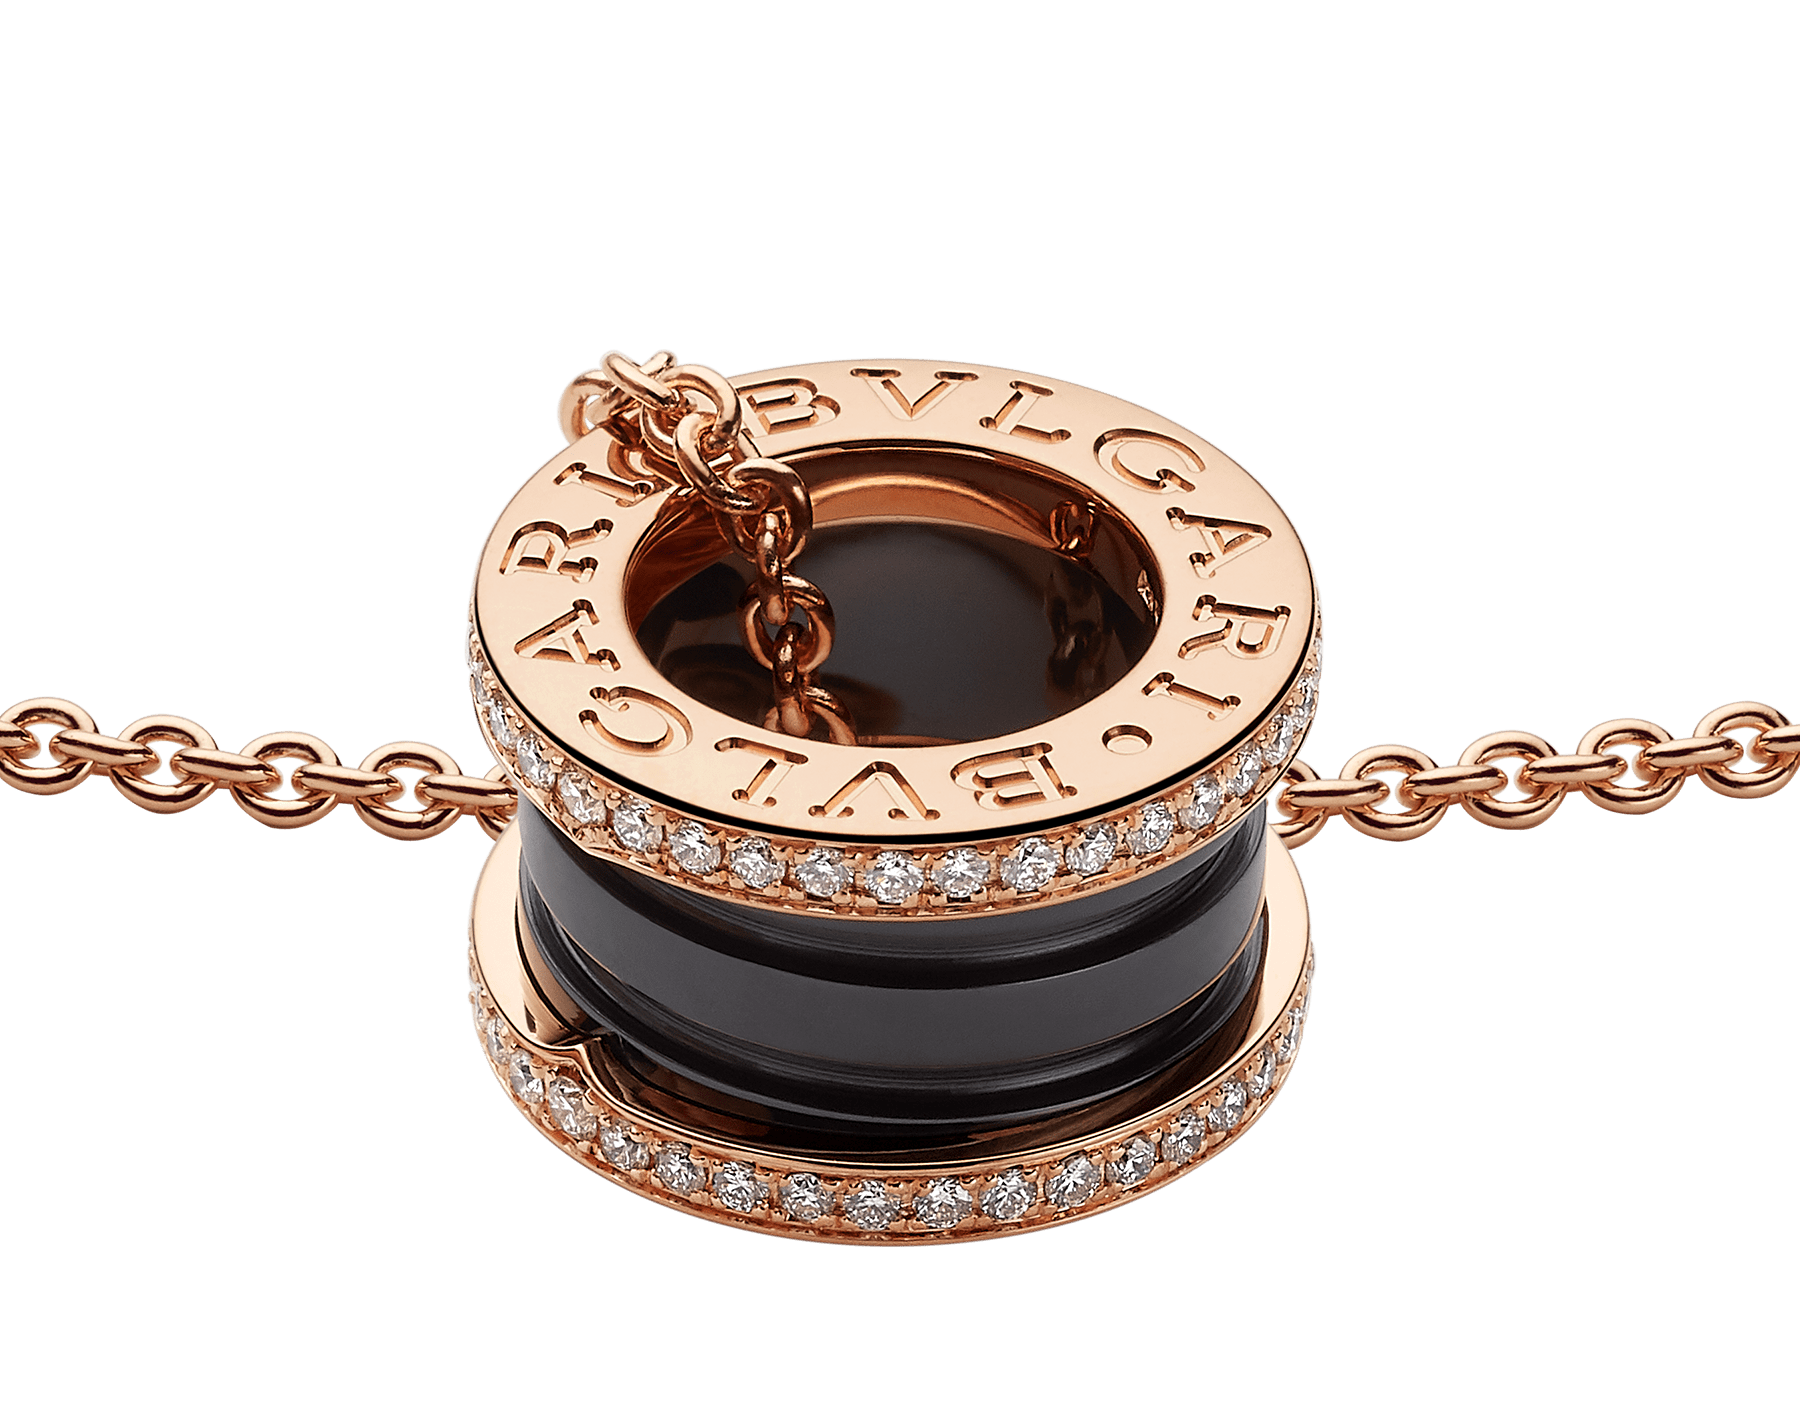 B.zero1 necklace with 18 kt rose gold chain and round pendant with two 18 kt rose gold loops set with pavé diamonds on the edges and a black ceramic spiral. 350056 image 3